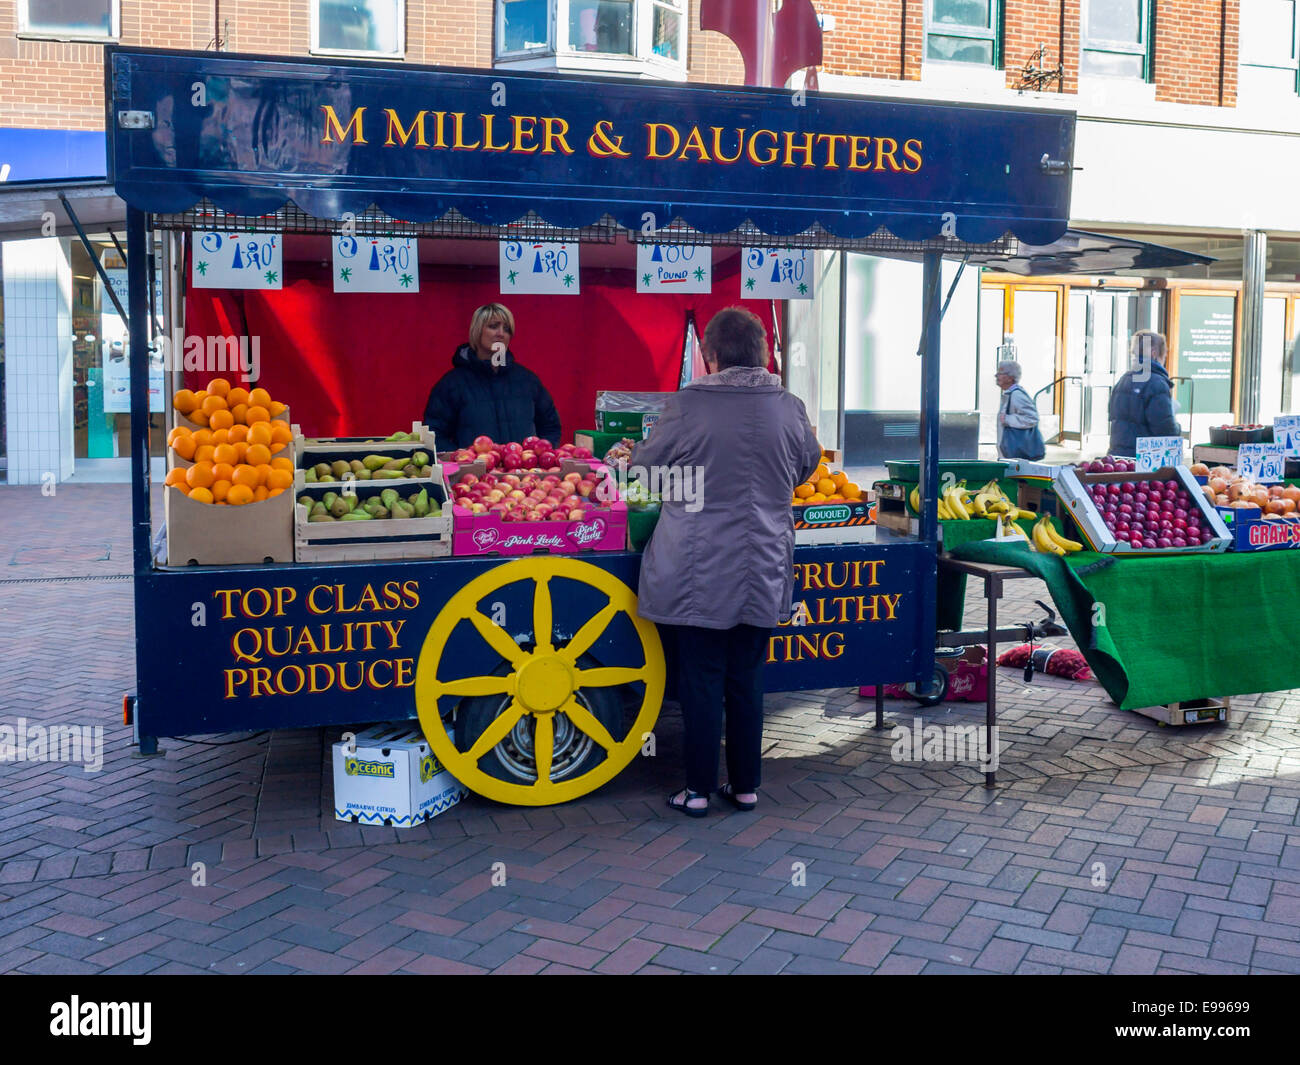 Market stall selling fruit with the slogan Fresh Fruit Healthy Eating - Stock Image